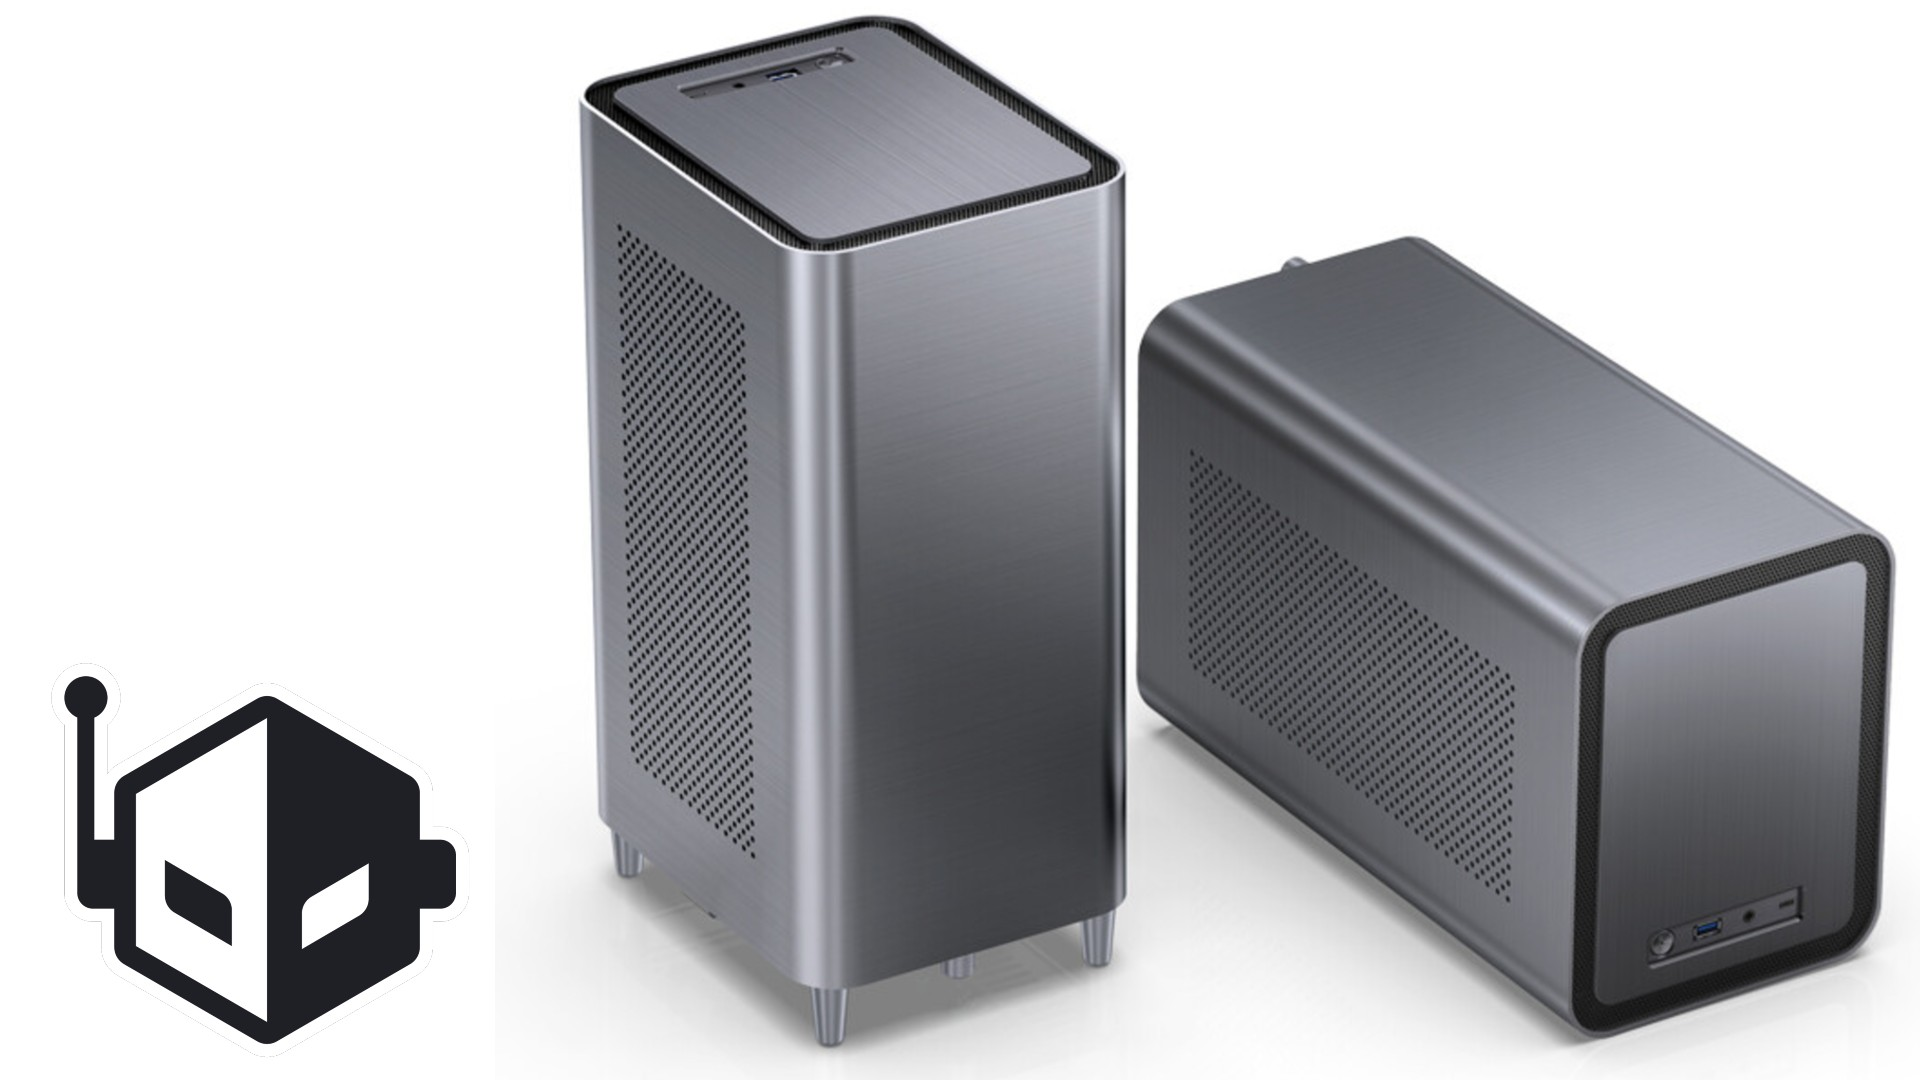 Jonsbo Introduces the N1 Mini-ITX PC Chassis